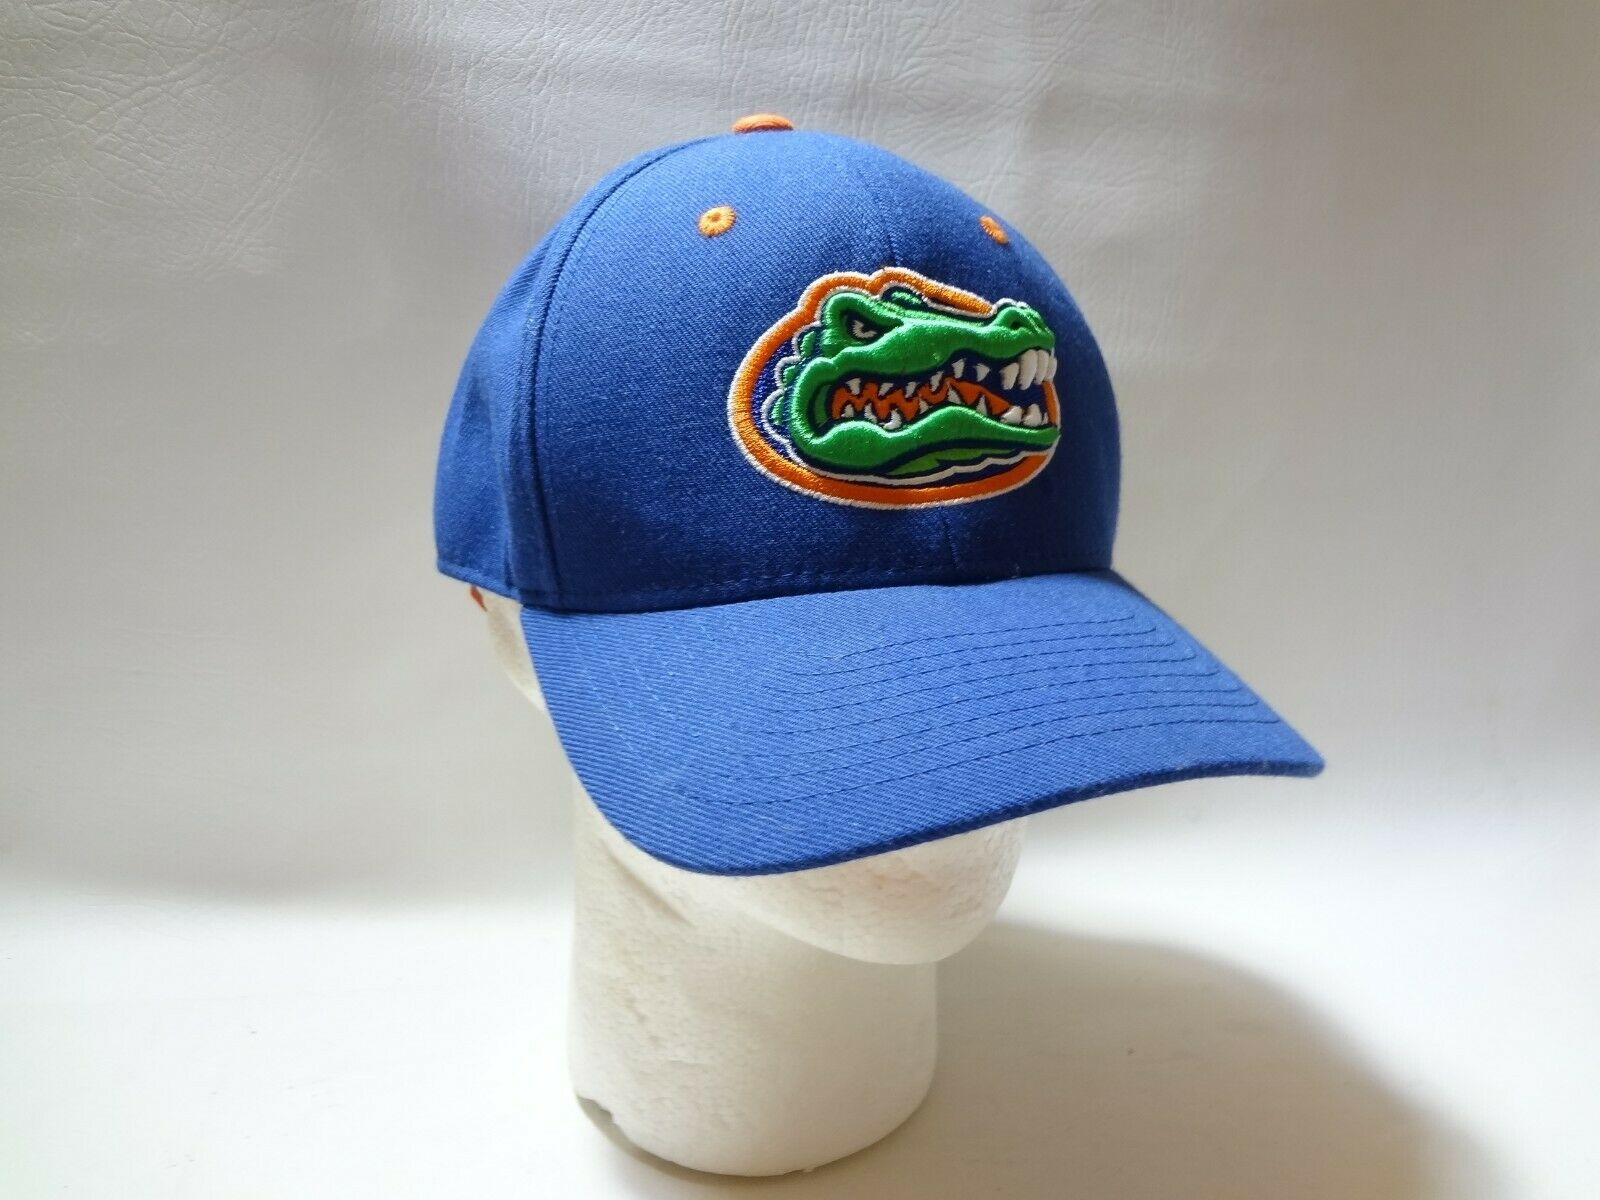 New University Of Florida UF Zephyr Fitted Cap Hat 7 1/2 Z brand College